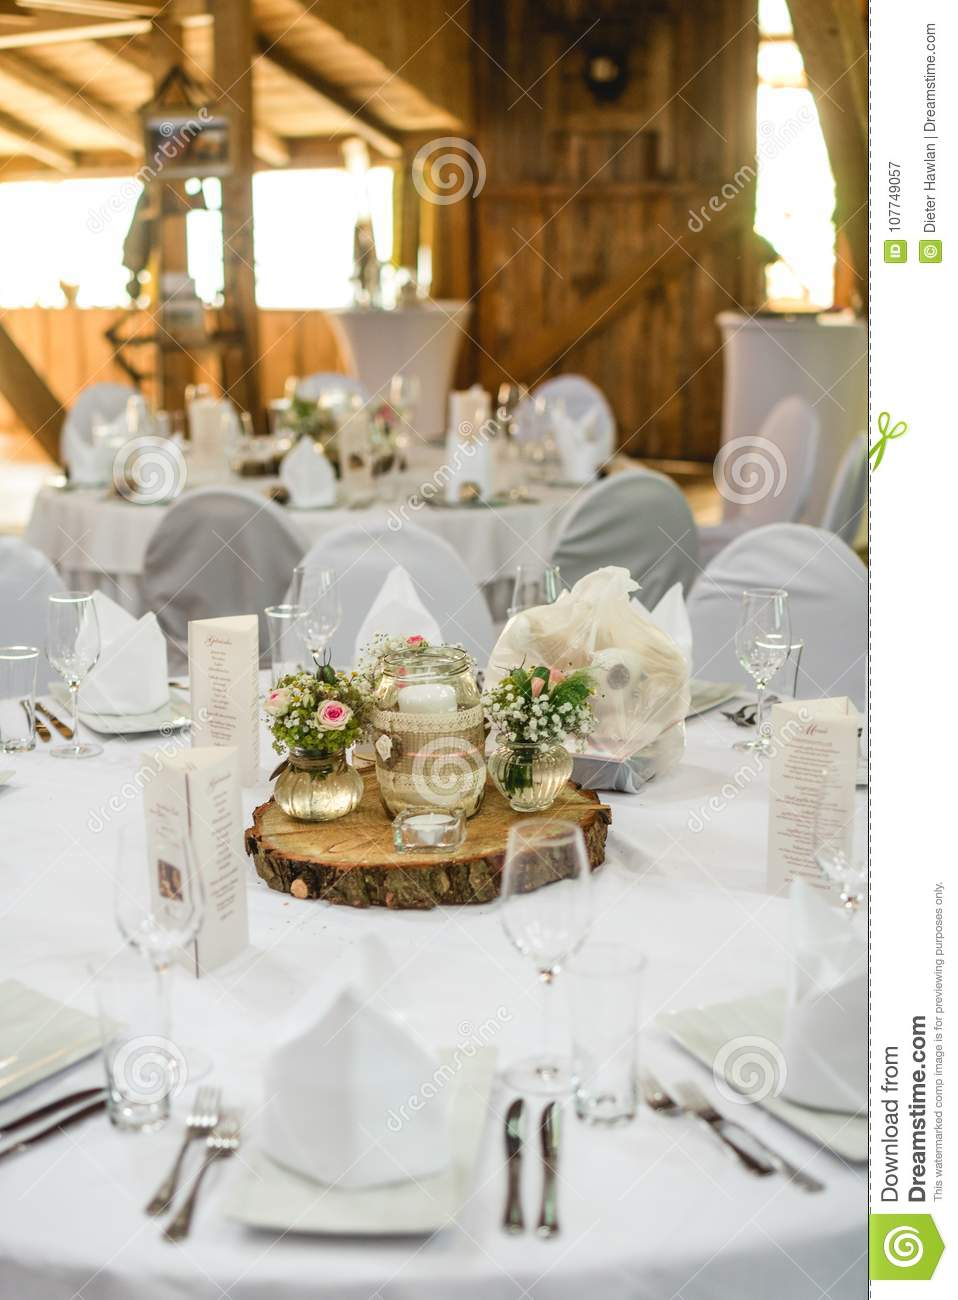 White Wedding Table With Flowers Stock Image Image Of Detail